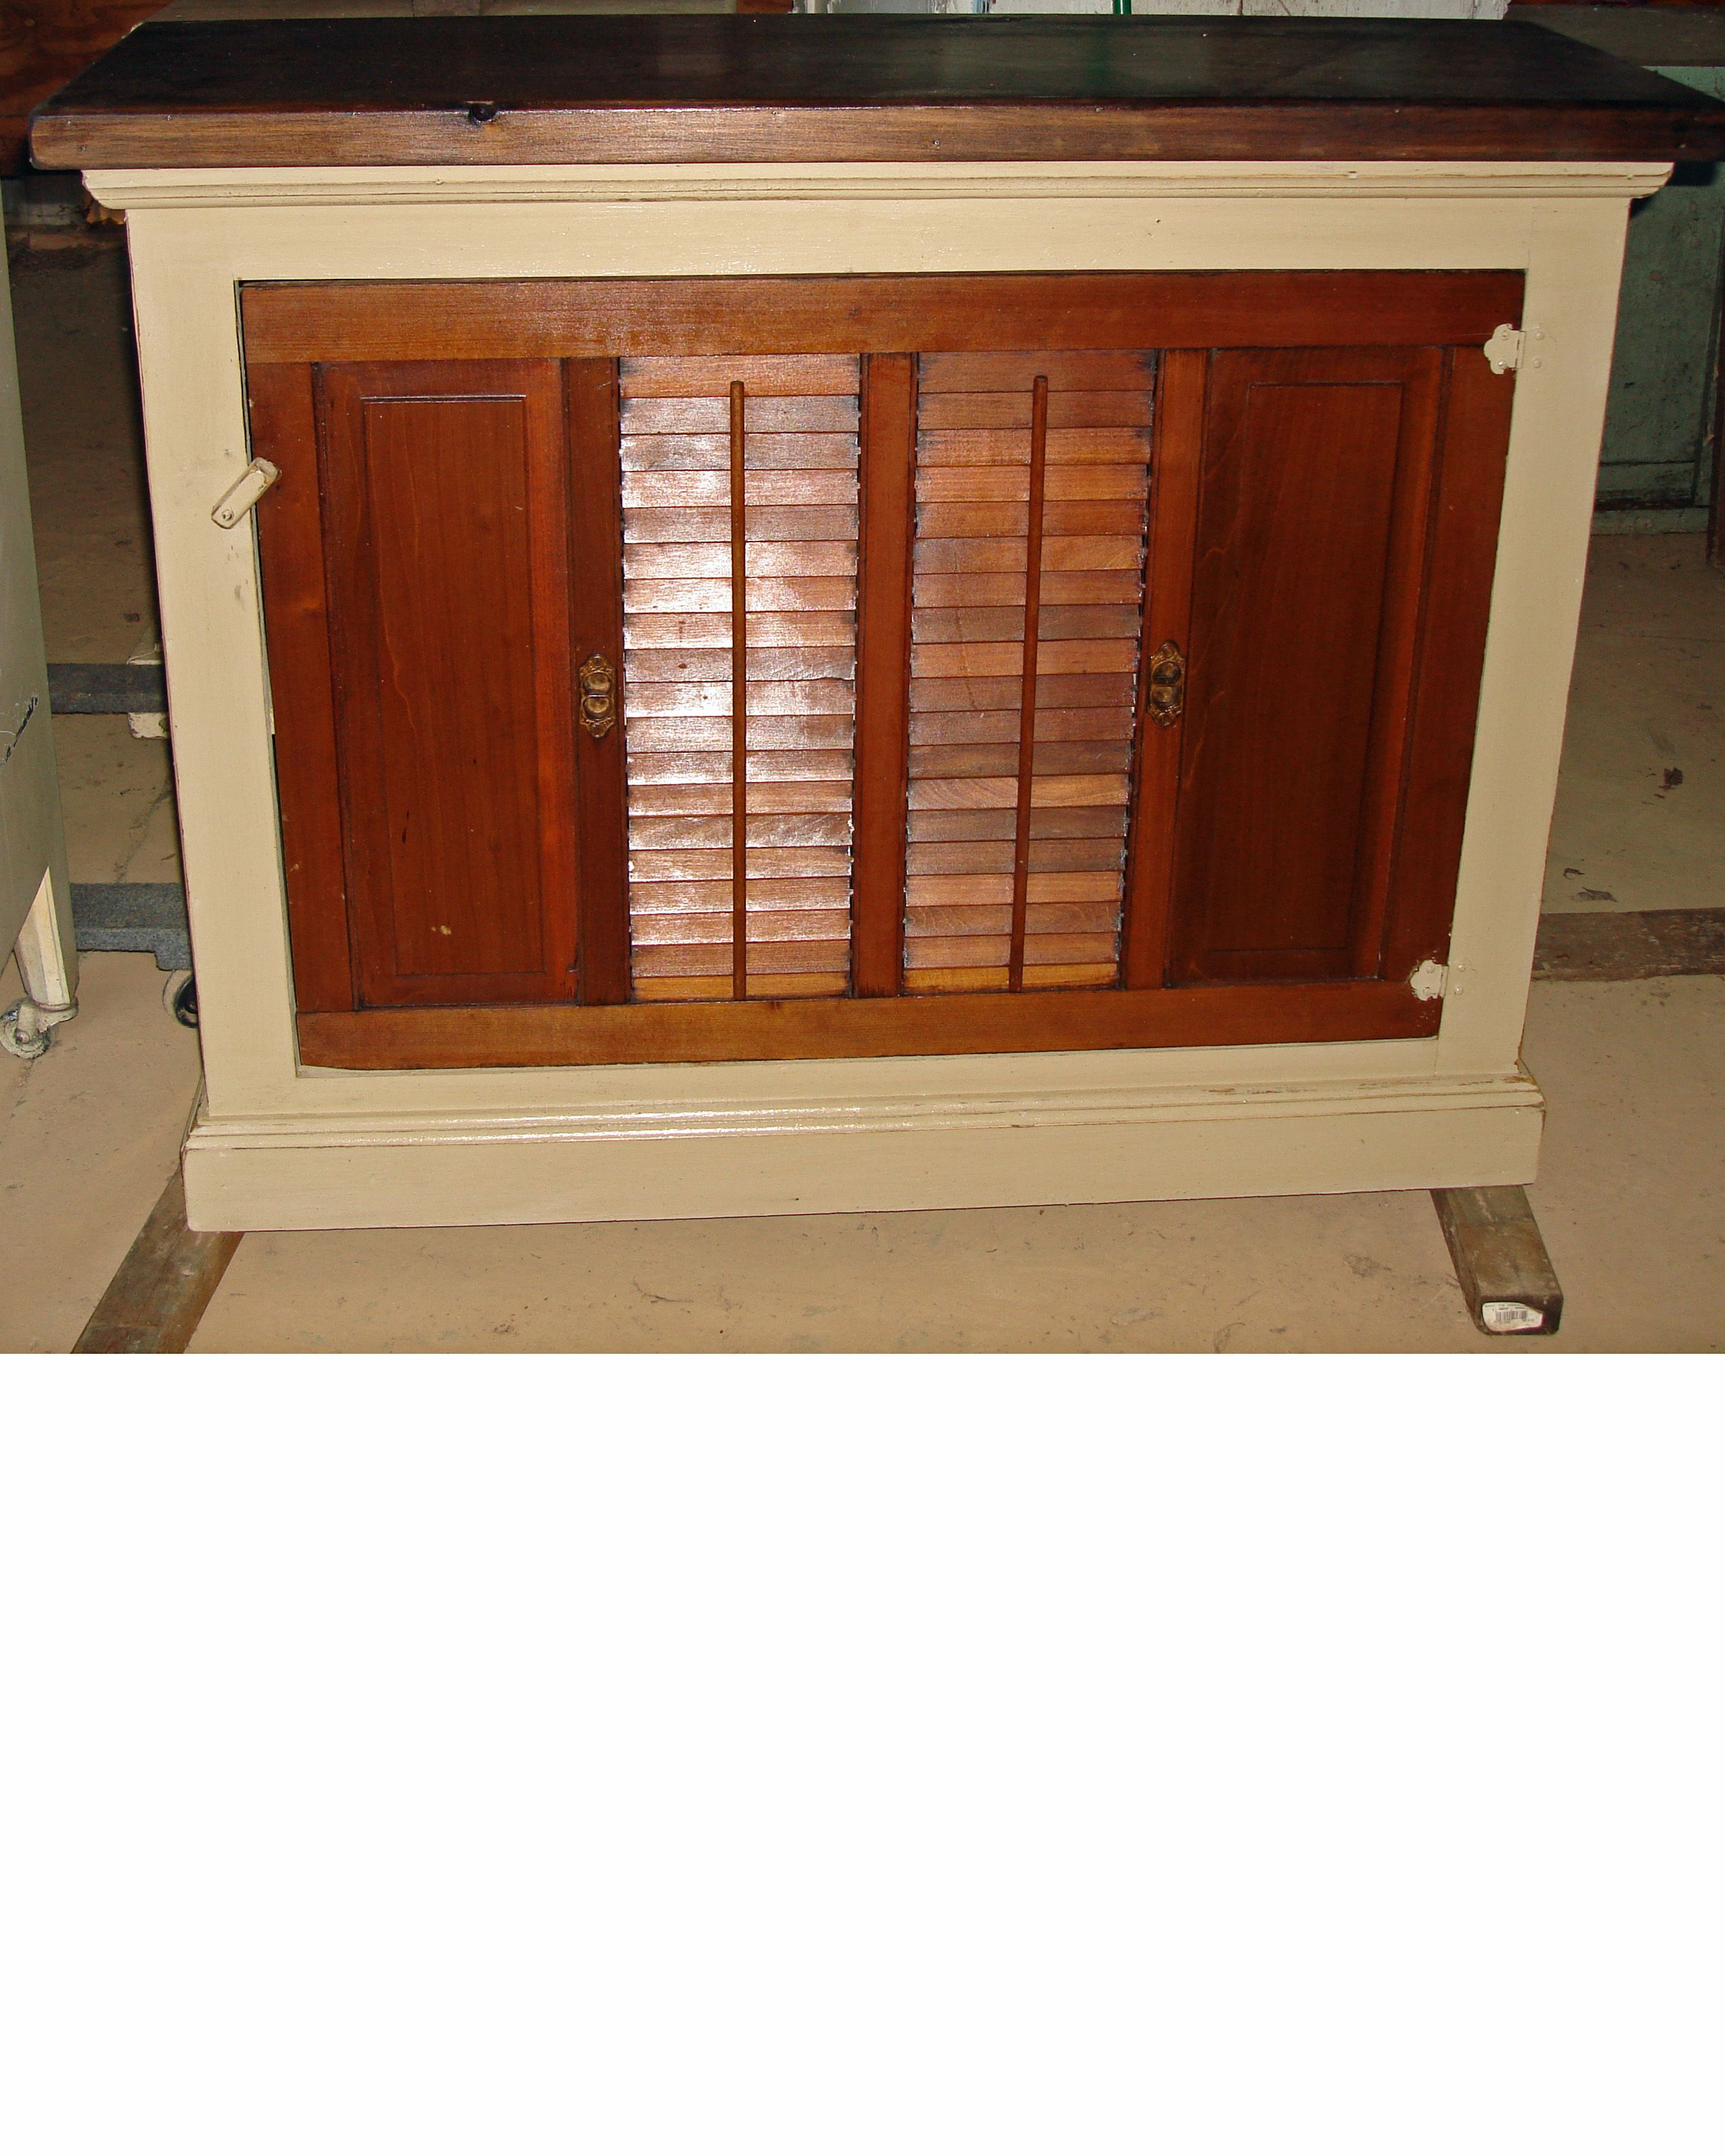 Amish Handmade Recycled Materials Cabinet With Shutter Door Shutter Doors Shutters Doors